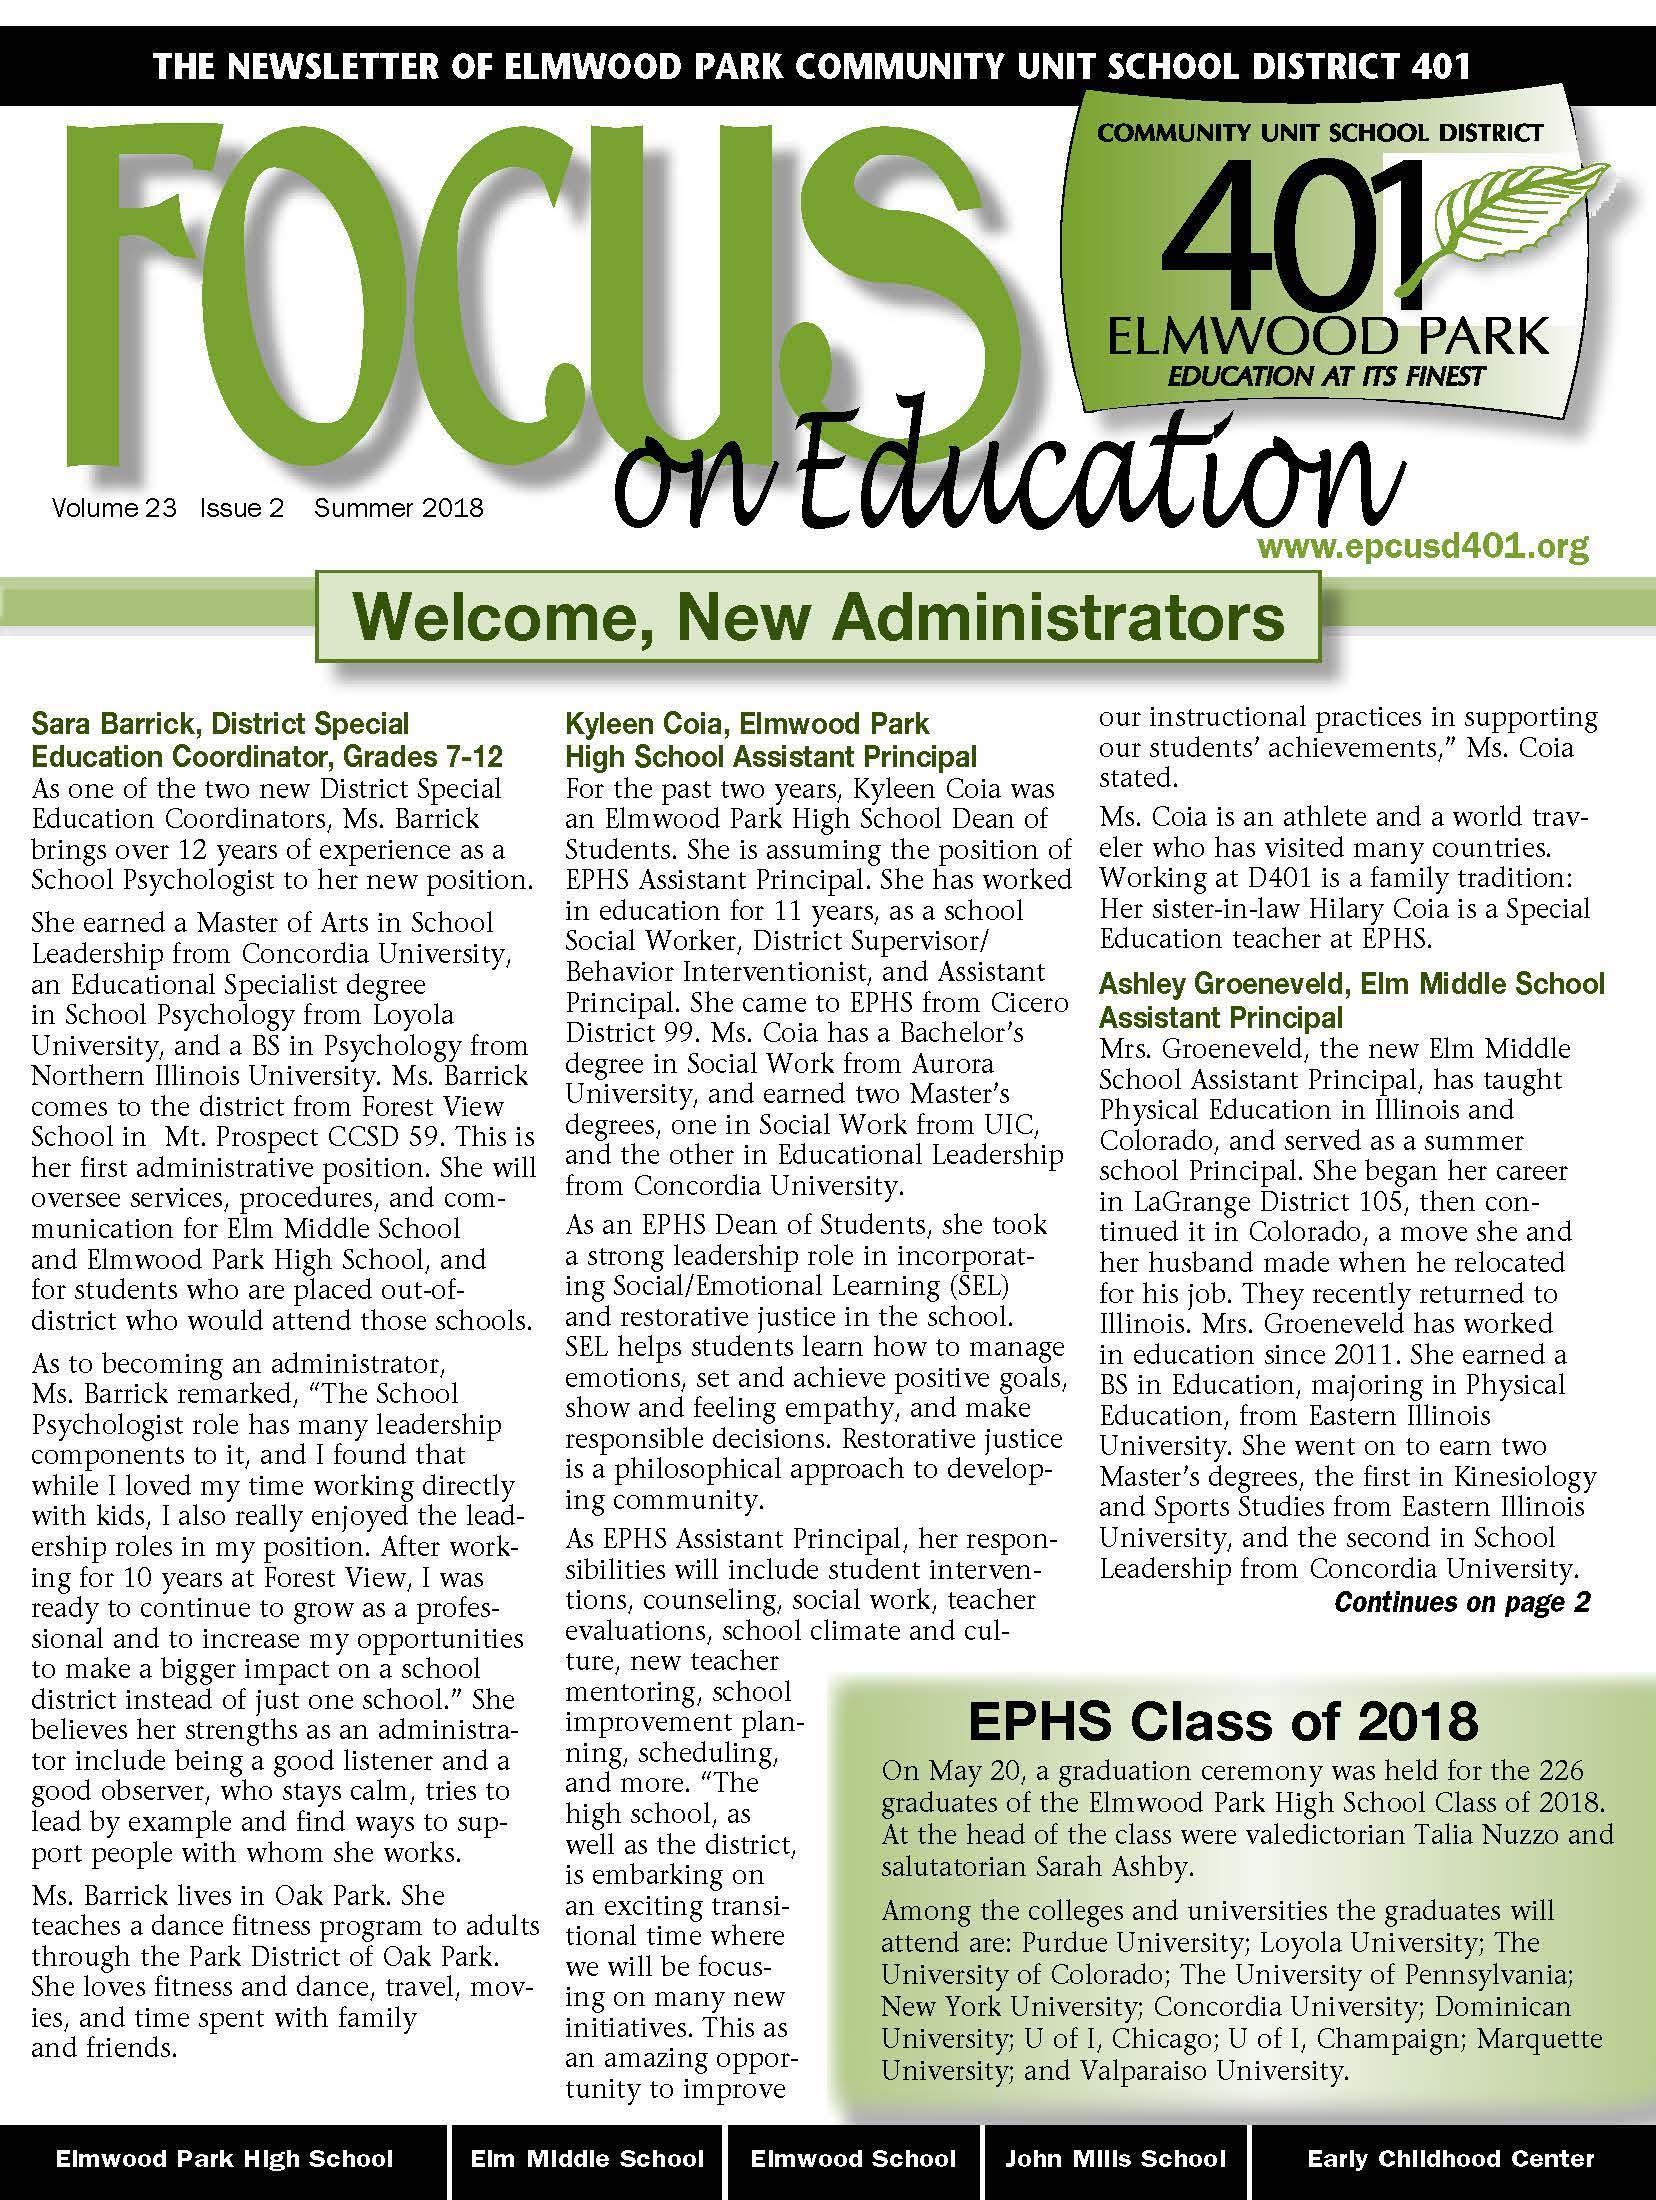 Focus on Education newsletter, page 1